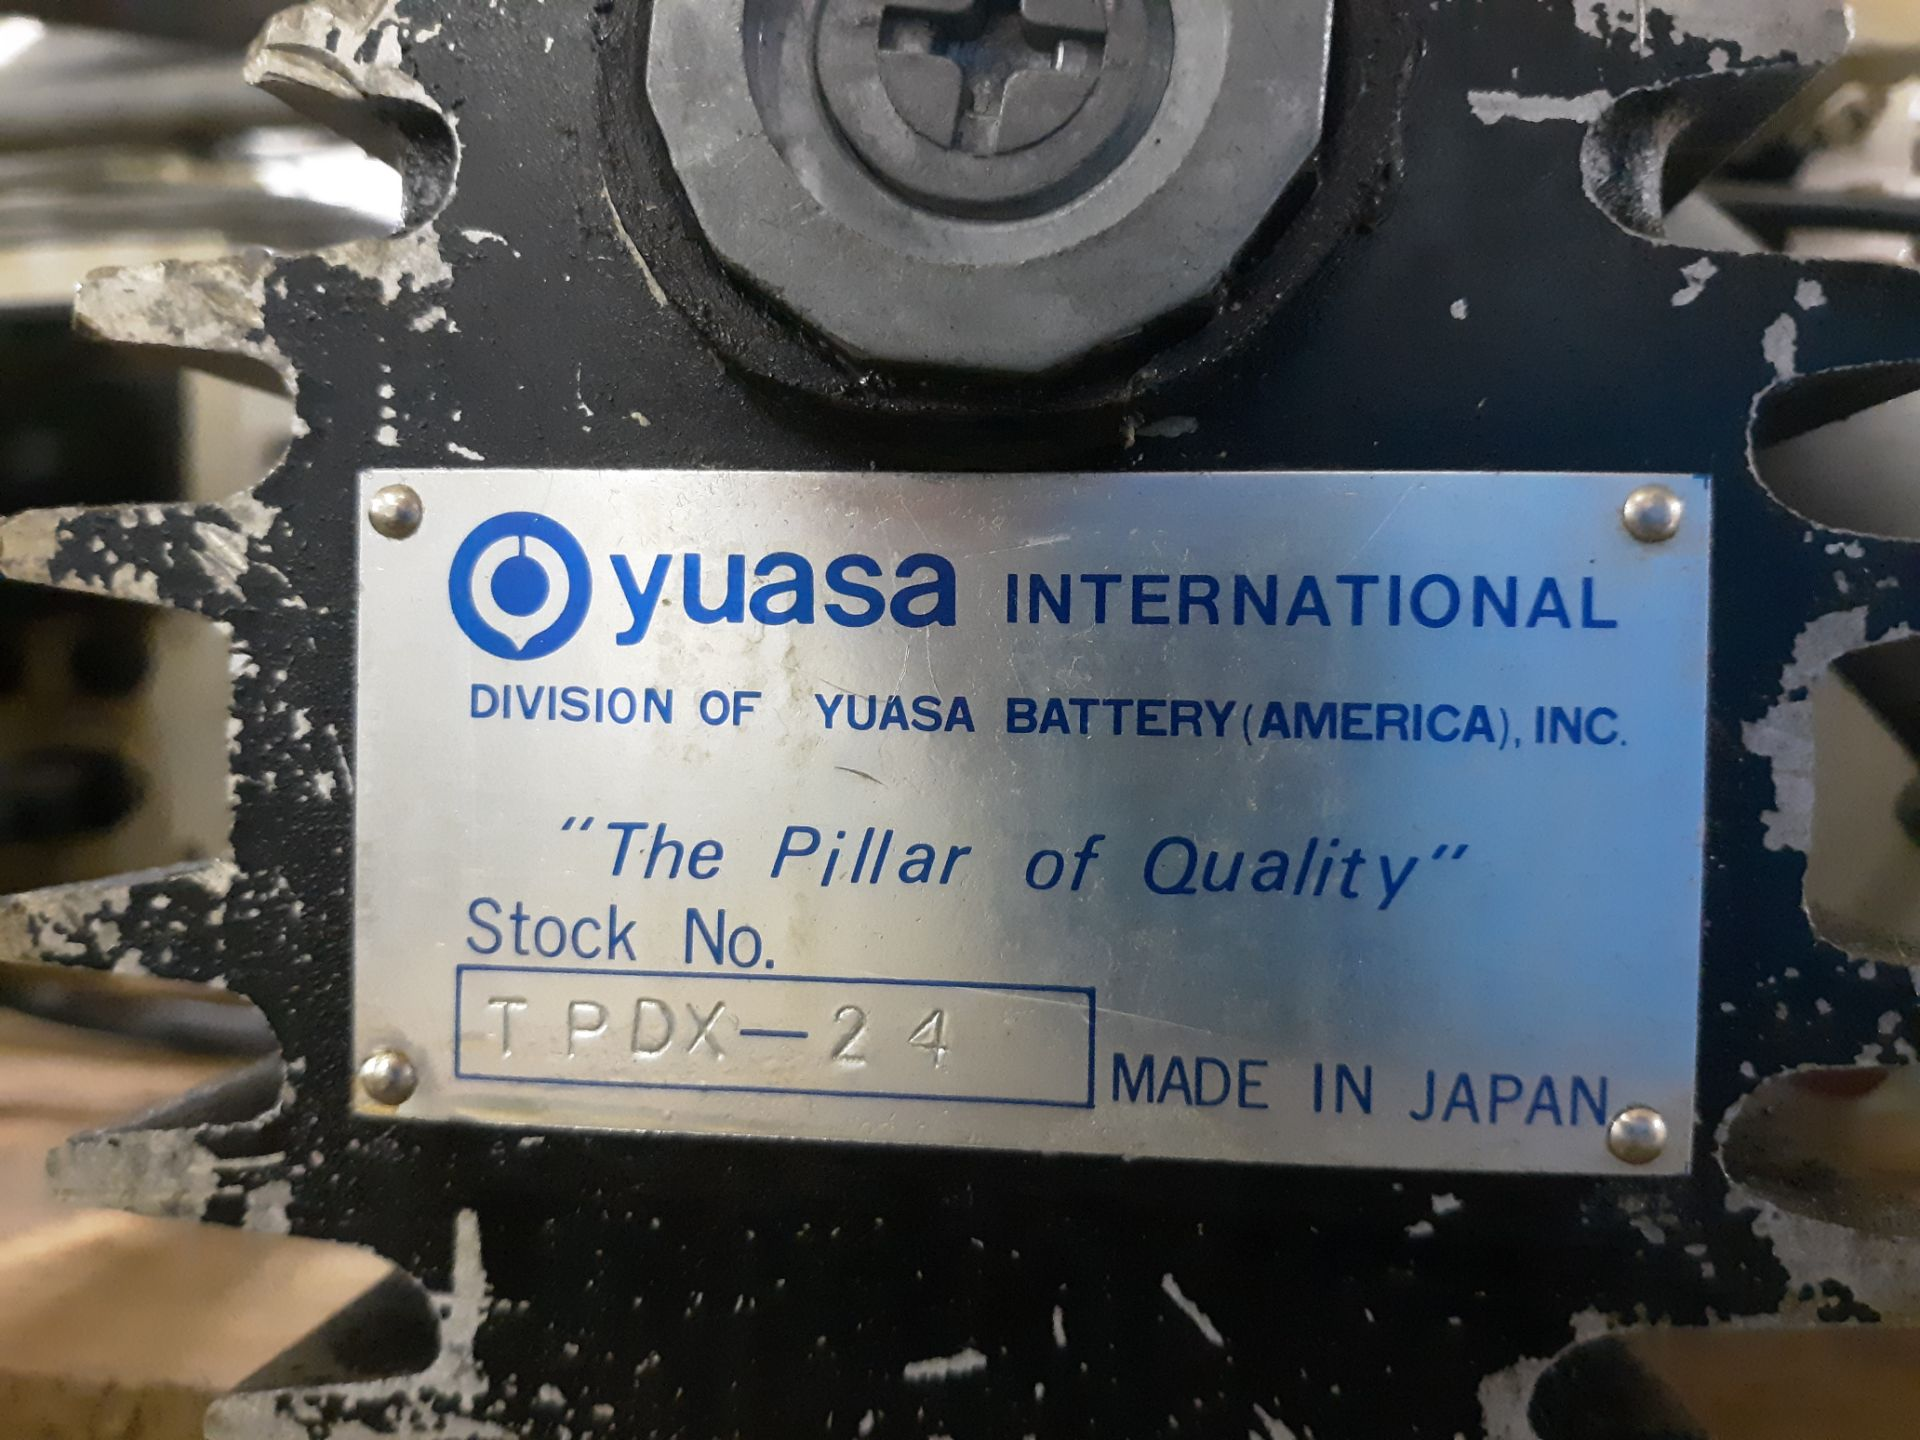 Lot 25 - (2) YUASA ROTARY TABLE INDEX CONTROLLER: RIGGING FEE: $10